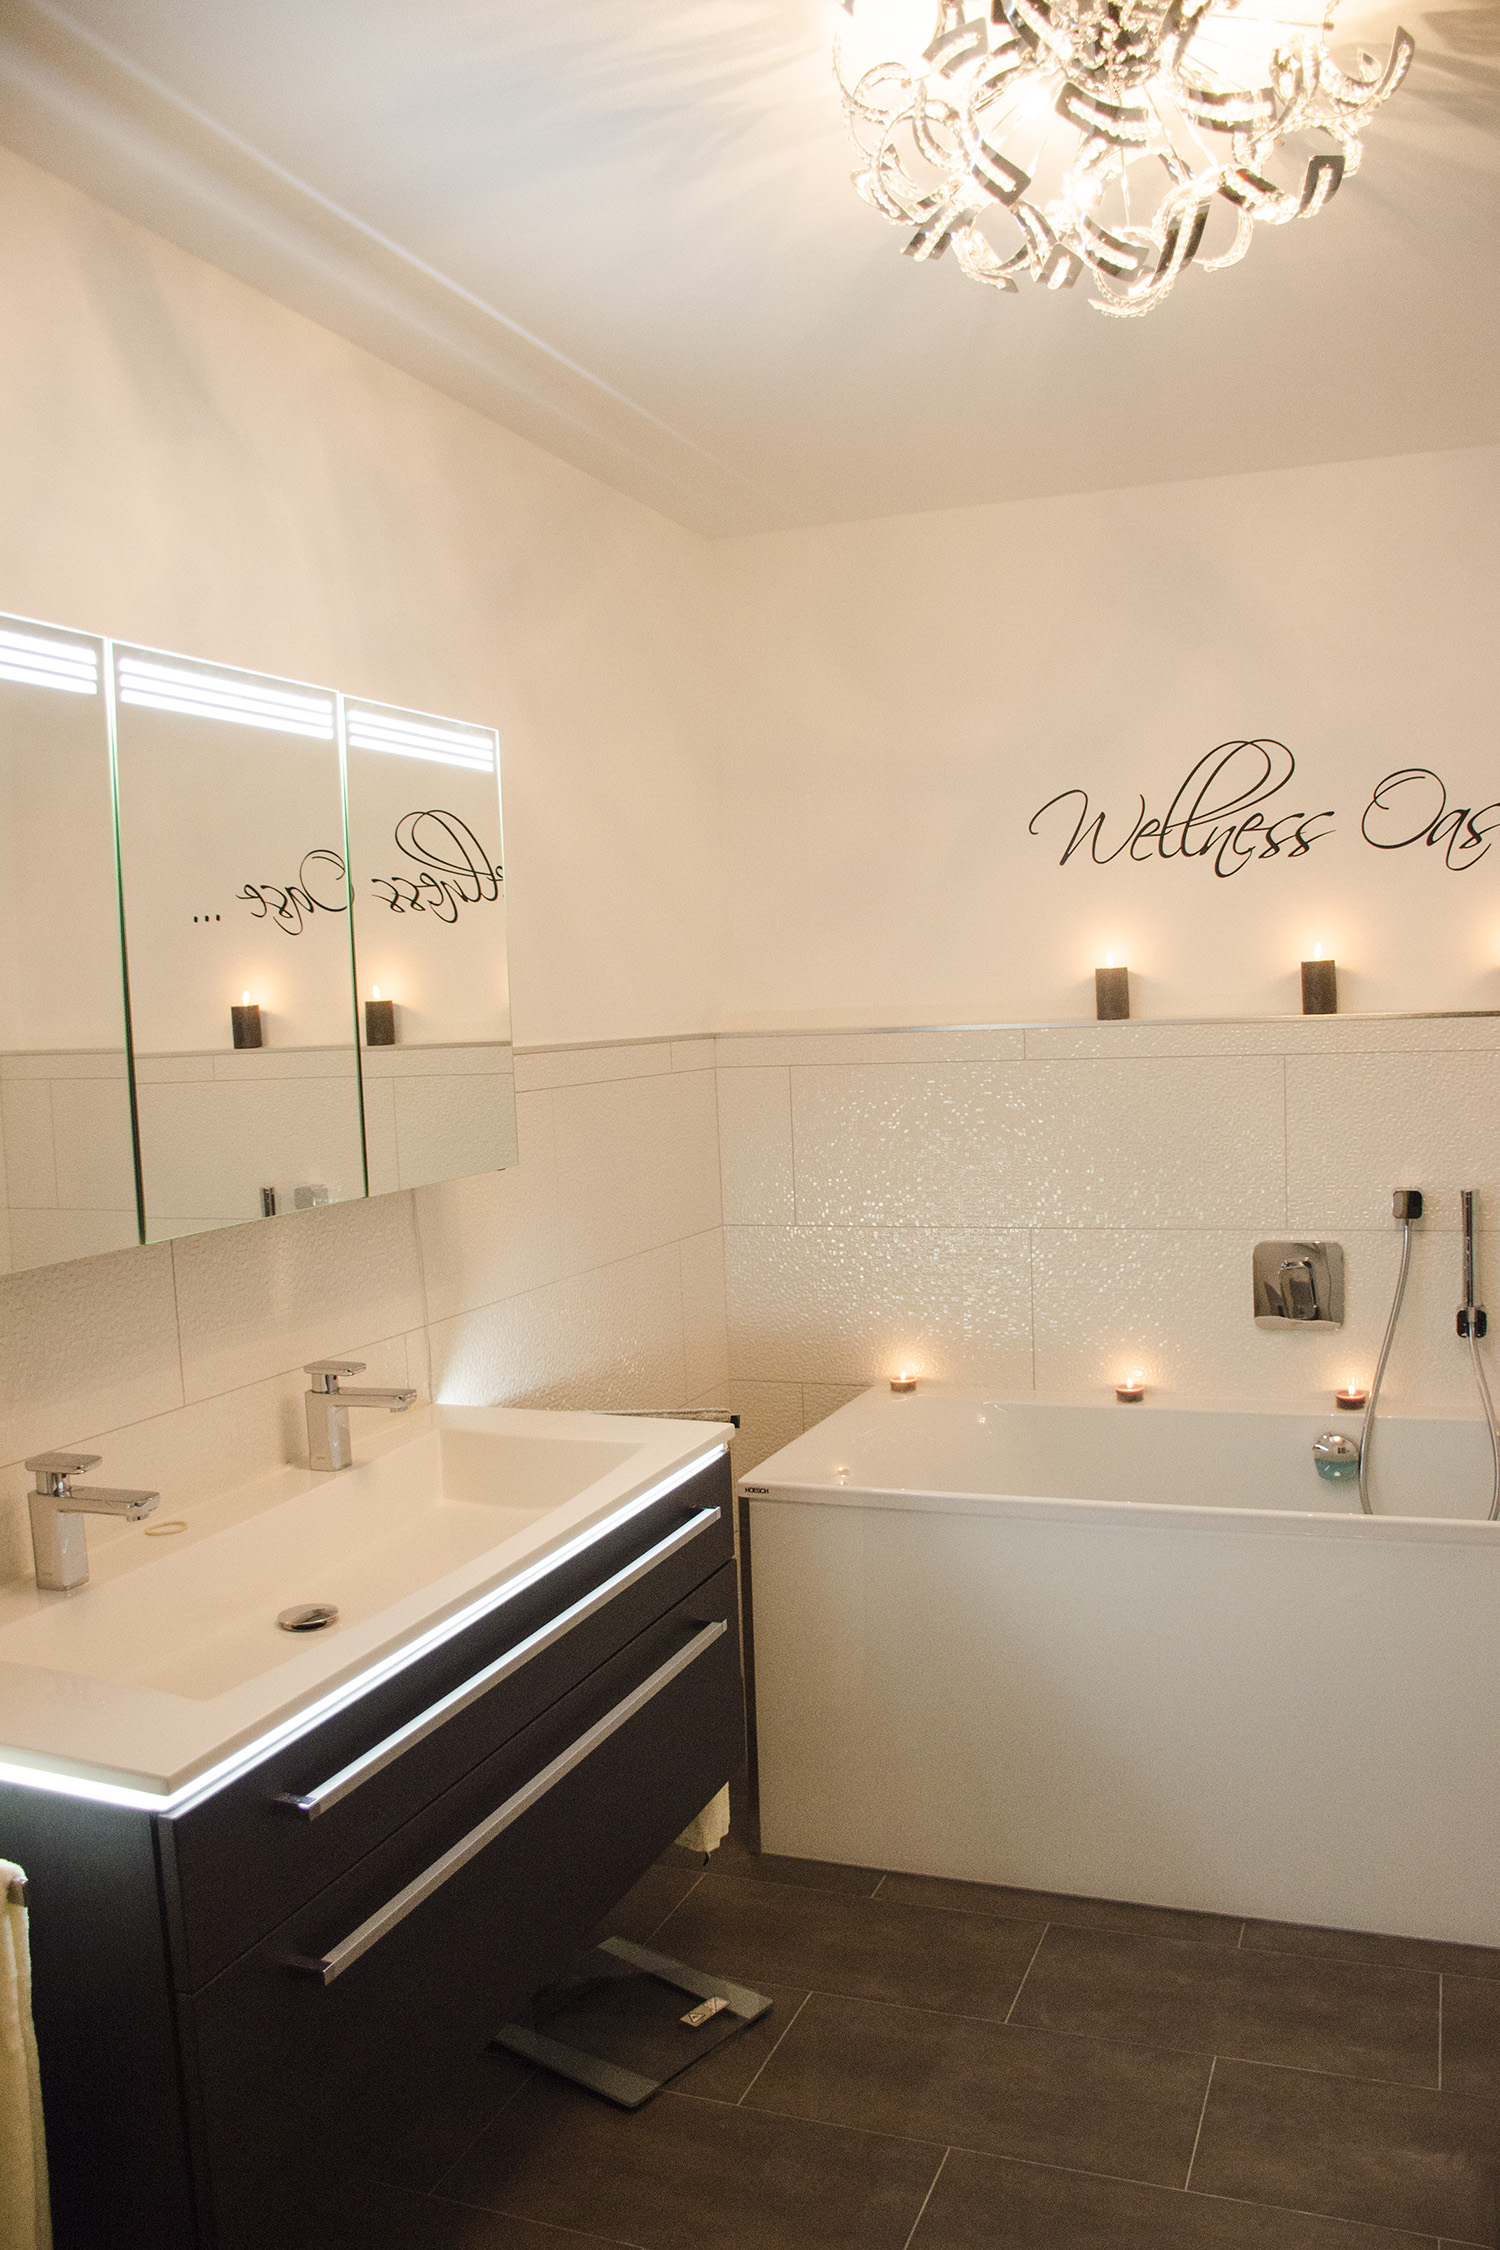 Unsere Luxus Apartments Lifestyle Beauty Wellness